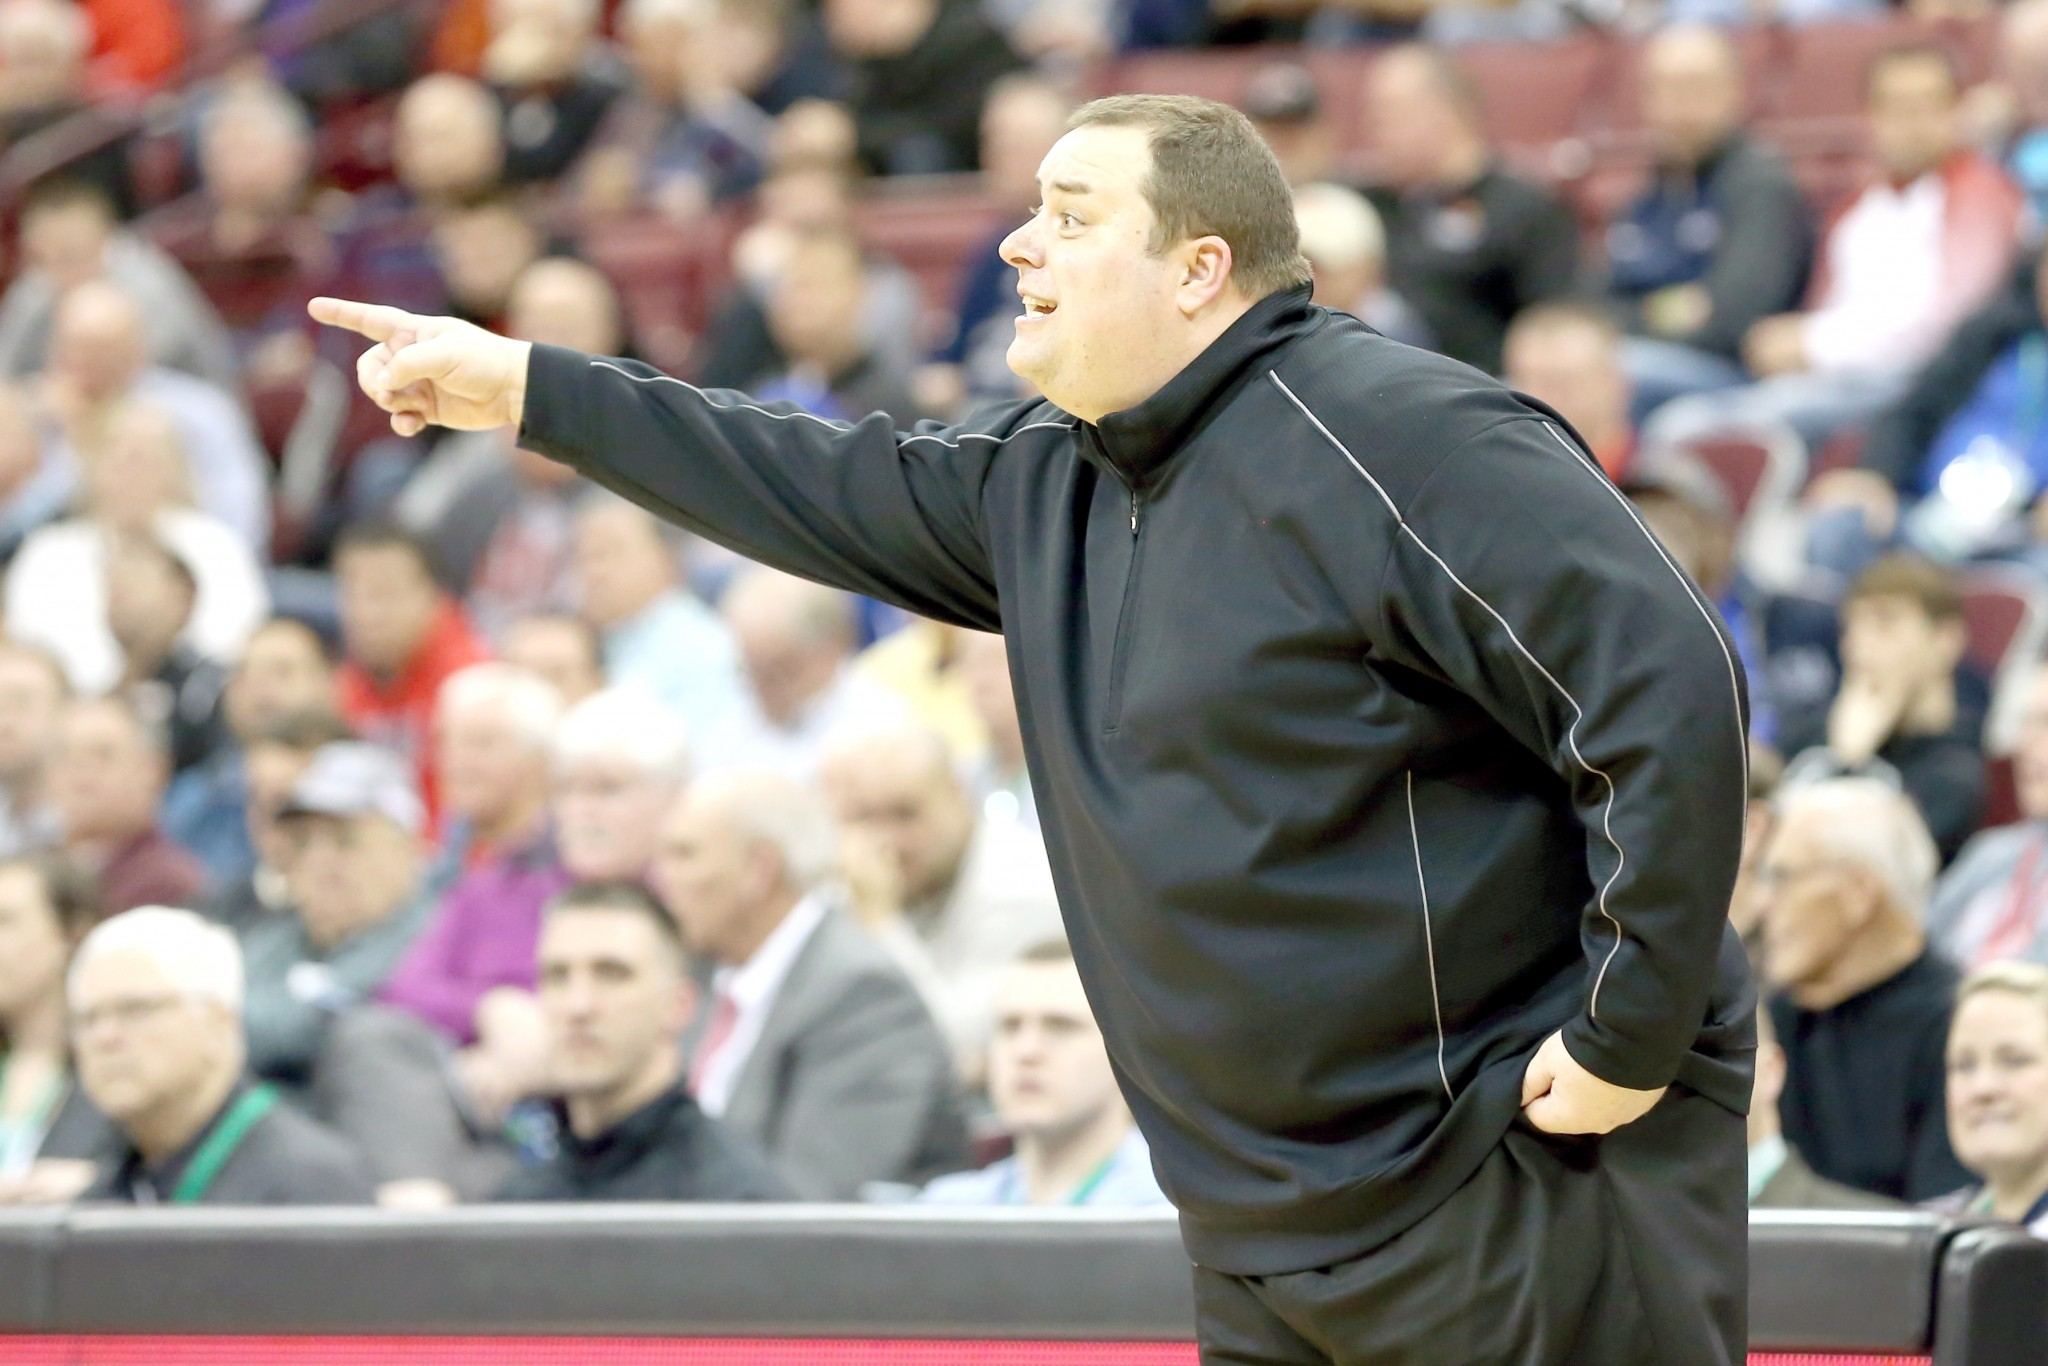 Cardinal Stritch basketball coach Jamie Kachmarik during his team's 58-53 loss in the Division III state semifinals to Cleveland Heights Lutheran East at Ohio State's Jerome Schottenstein Center. (Press file photo by Scott Grau)